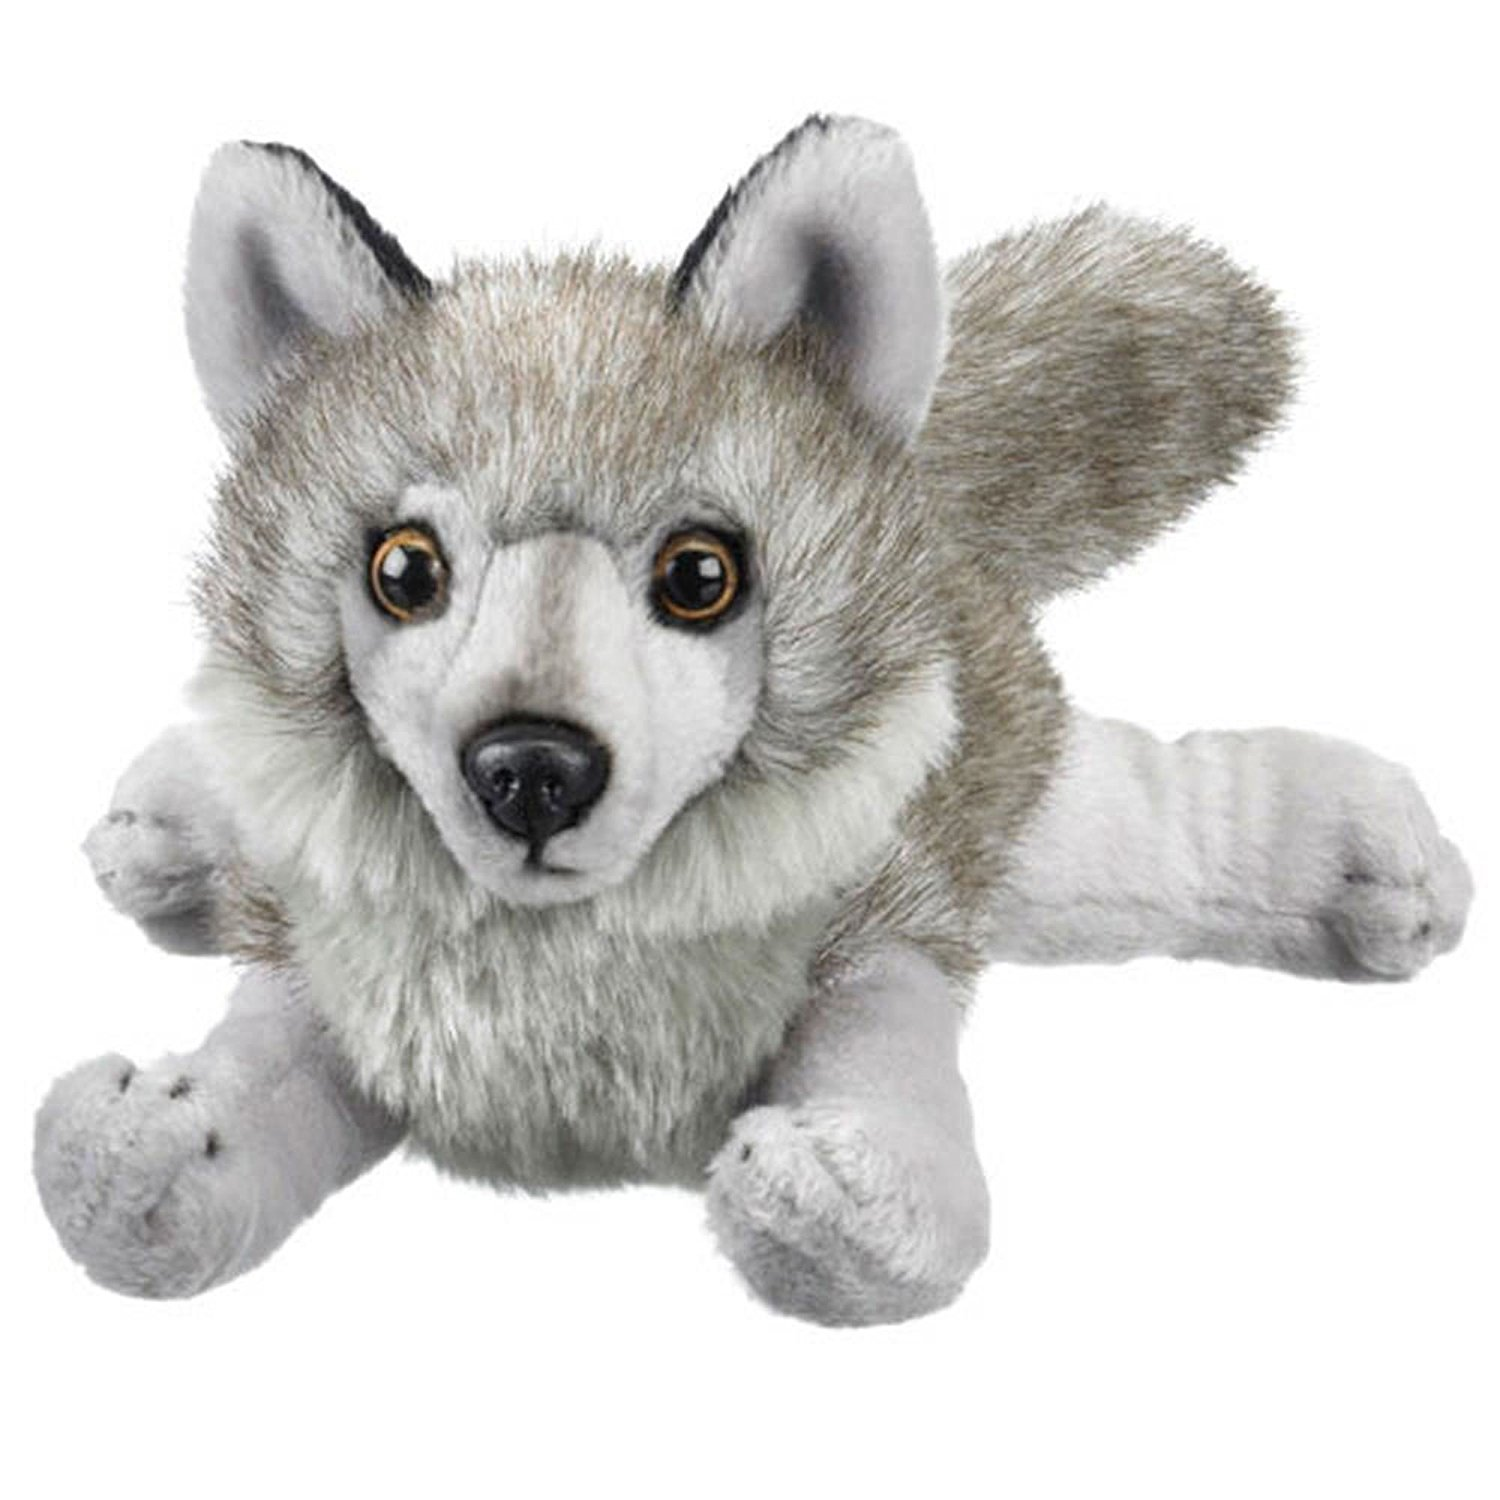 Gray Wolf Stuffed Animal Plush Toy 18 L Soft Squeezable Quality